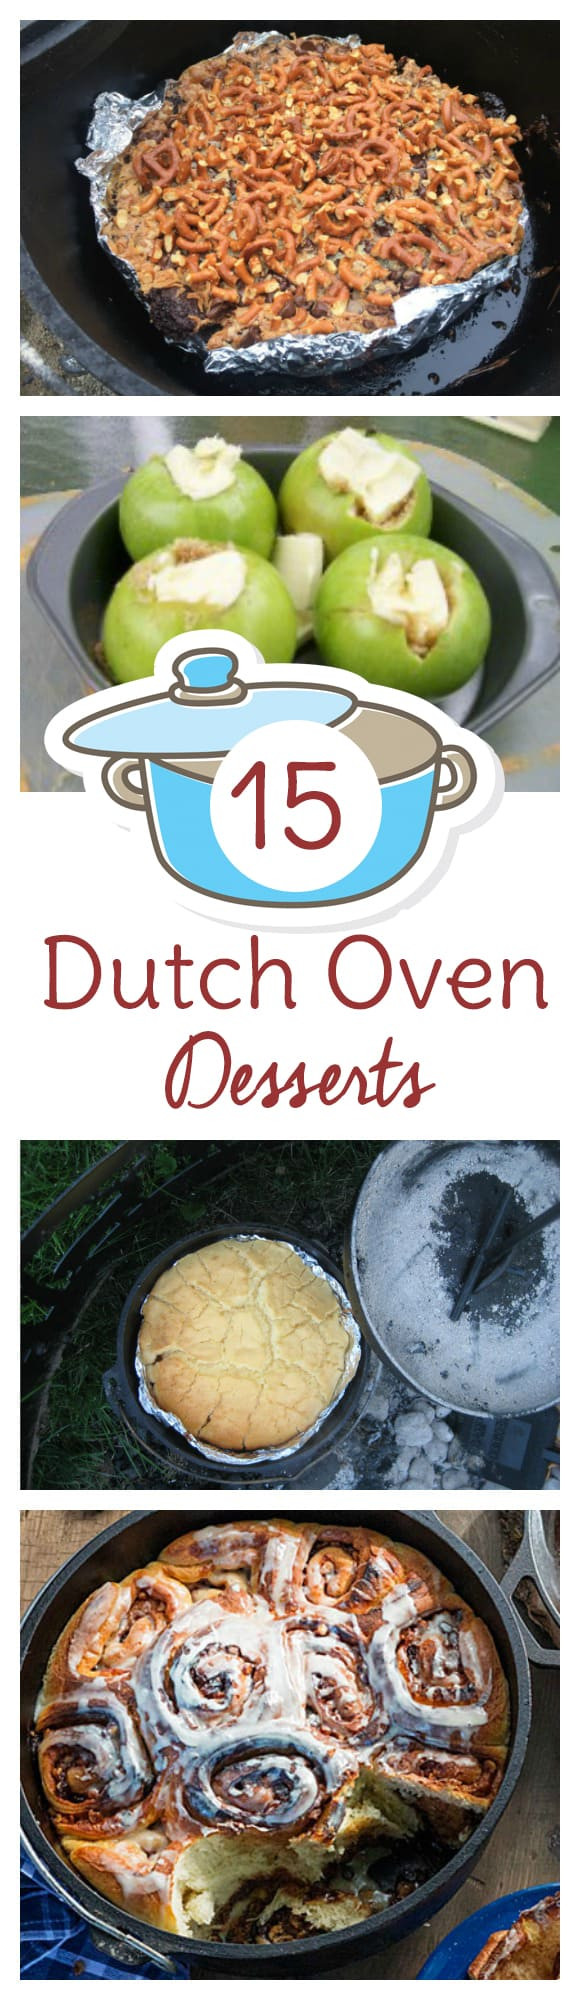 Dutch Oven Dessert Recipes  15 Dutch Oven Dessert Recipes